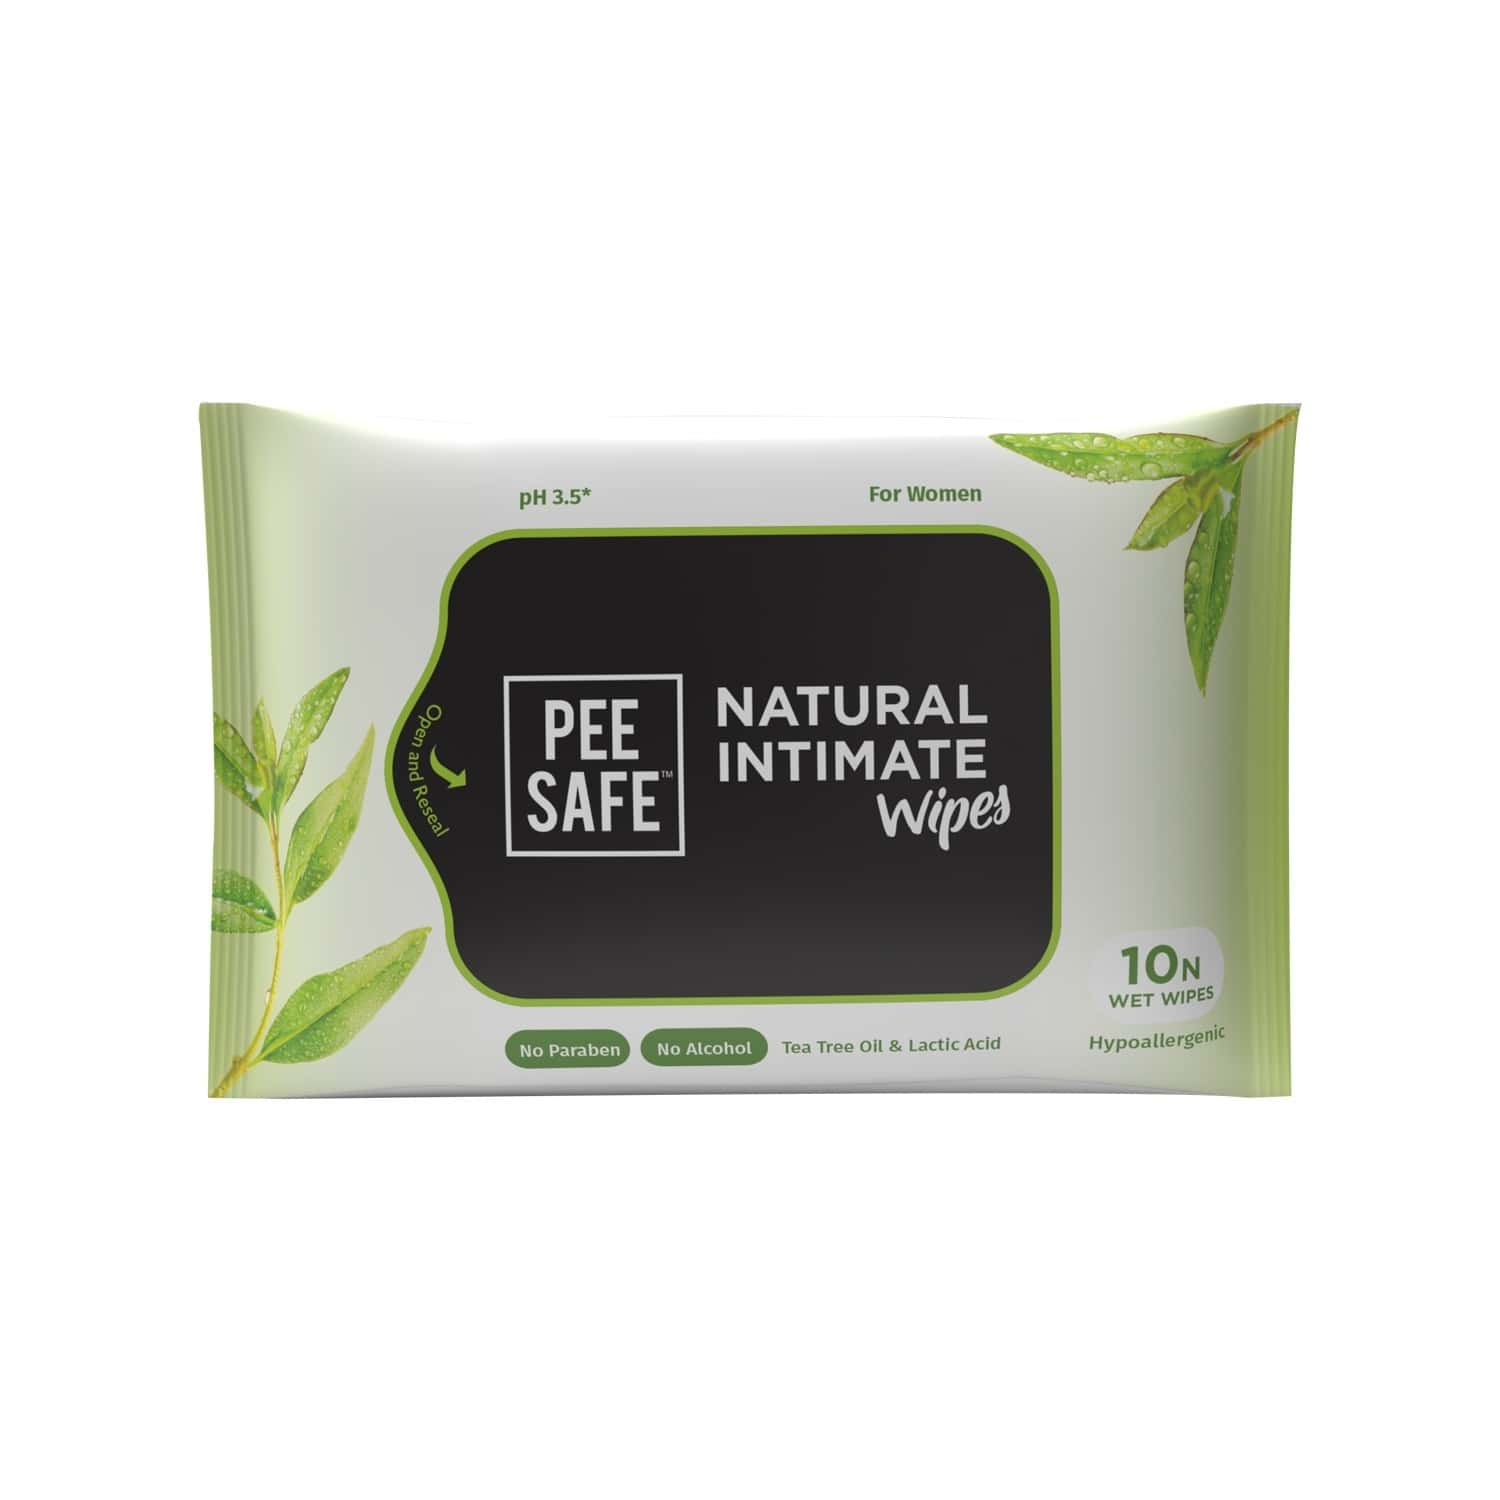 Pee Safe Natural Intimate Wipes - Pack Of 10